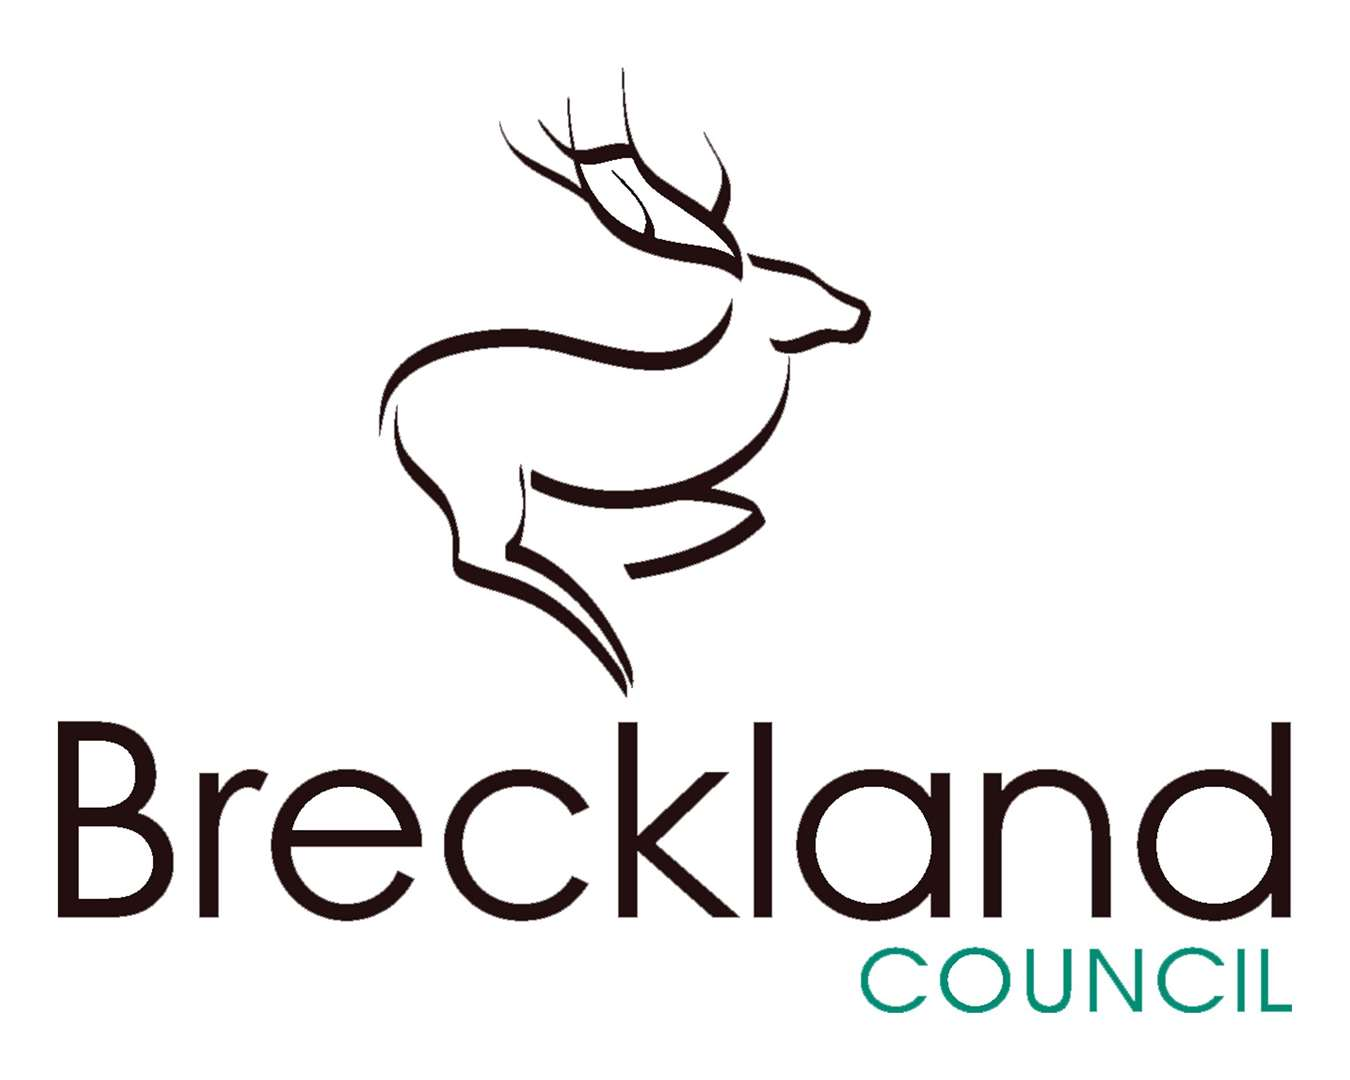 Breckland Council had granted planning permission to Karen Bromley, but a covenant from 2000 has hampered her plan